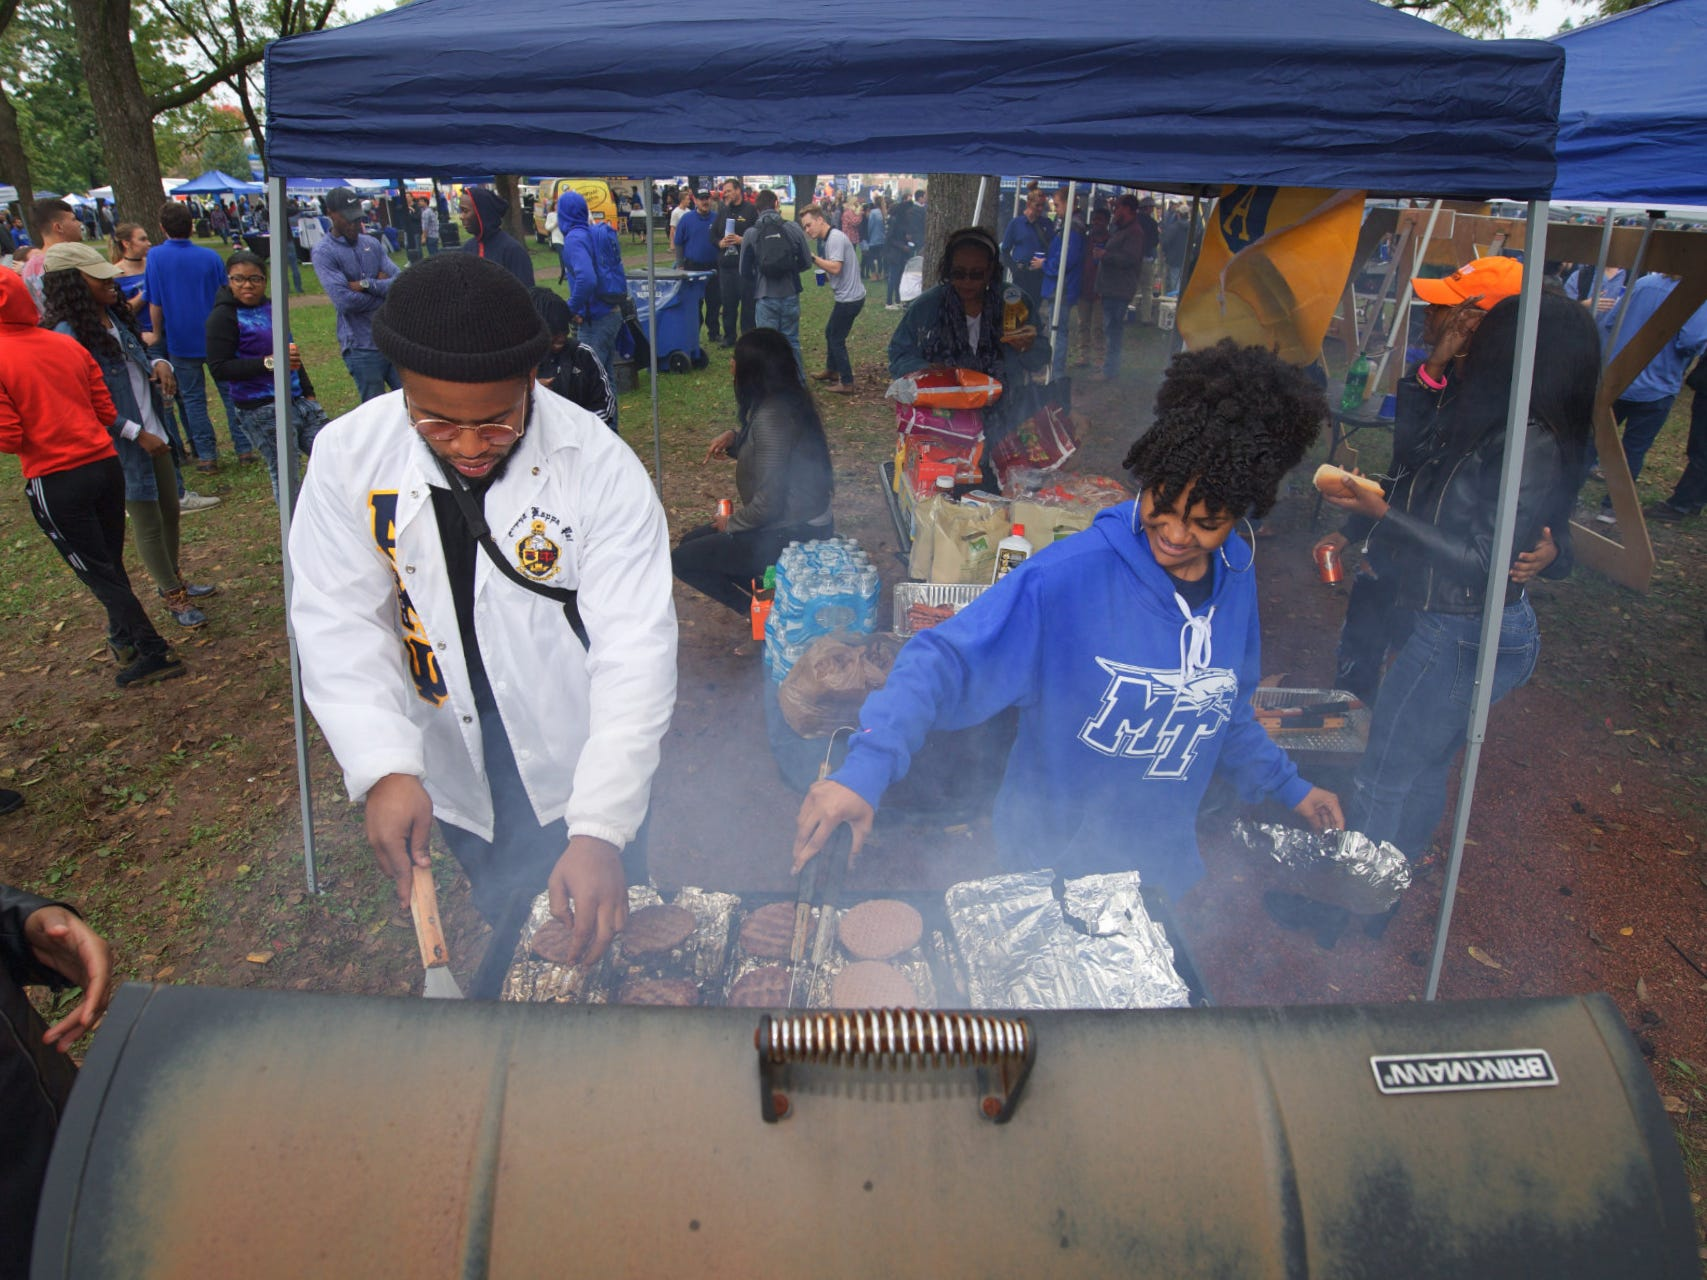 Tailgaters work the grill during MTSU's 2018 Homecoming celebration.